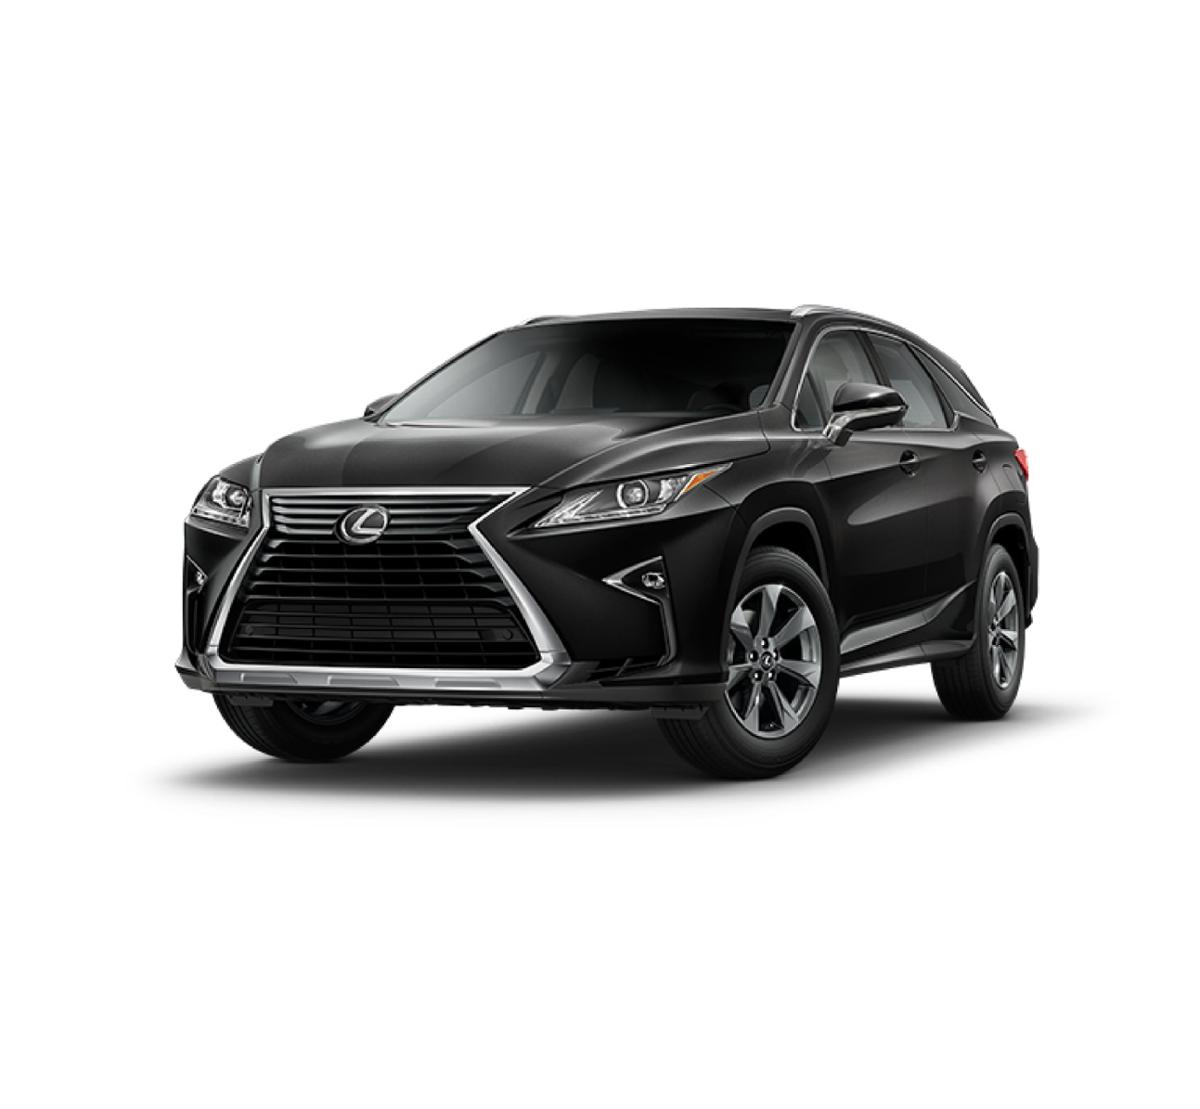 2019 Lexus RX 350L Vehicle Photo in Las Vegas, NV 89146